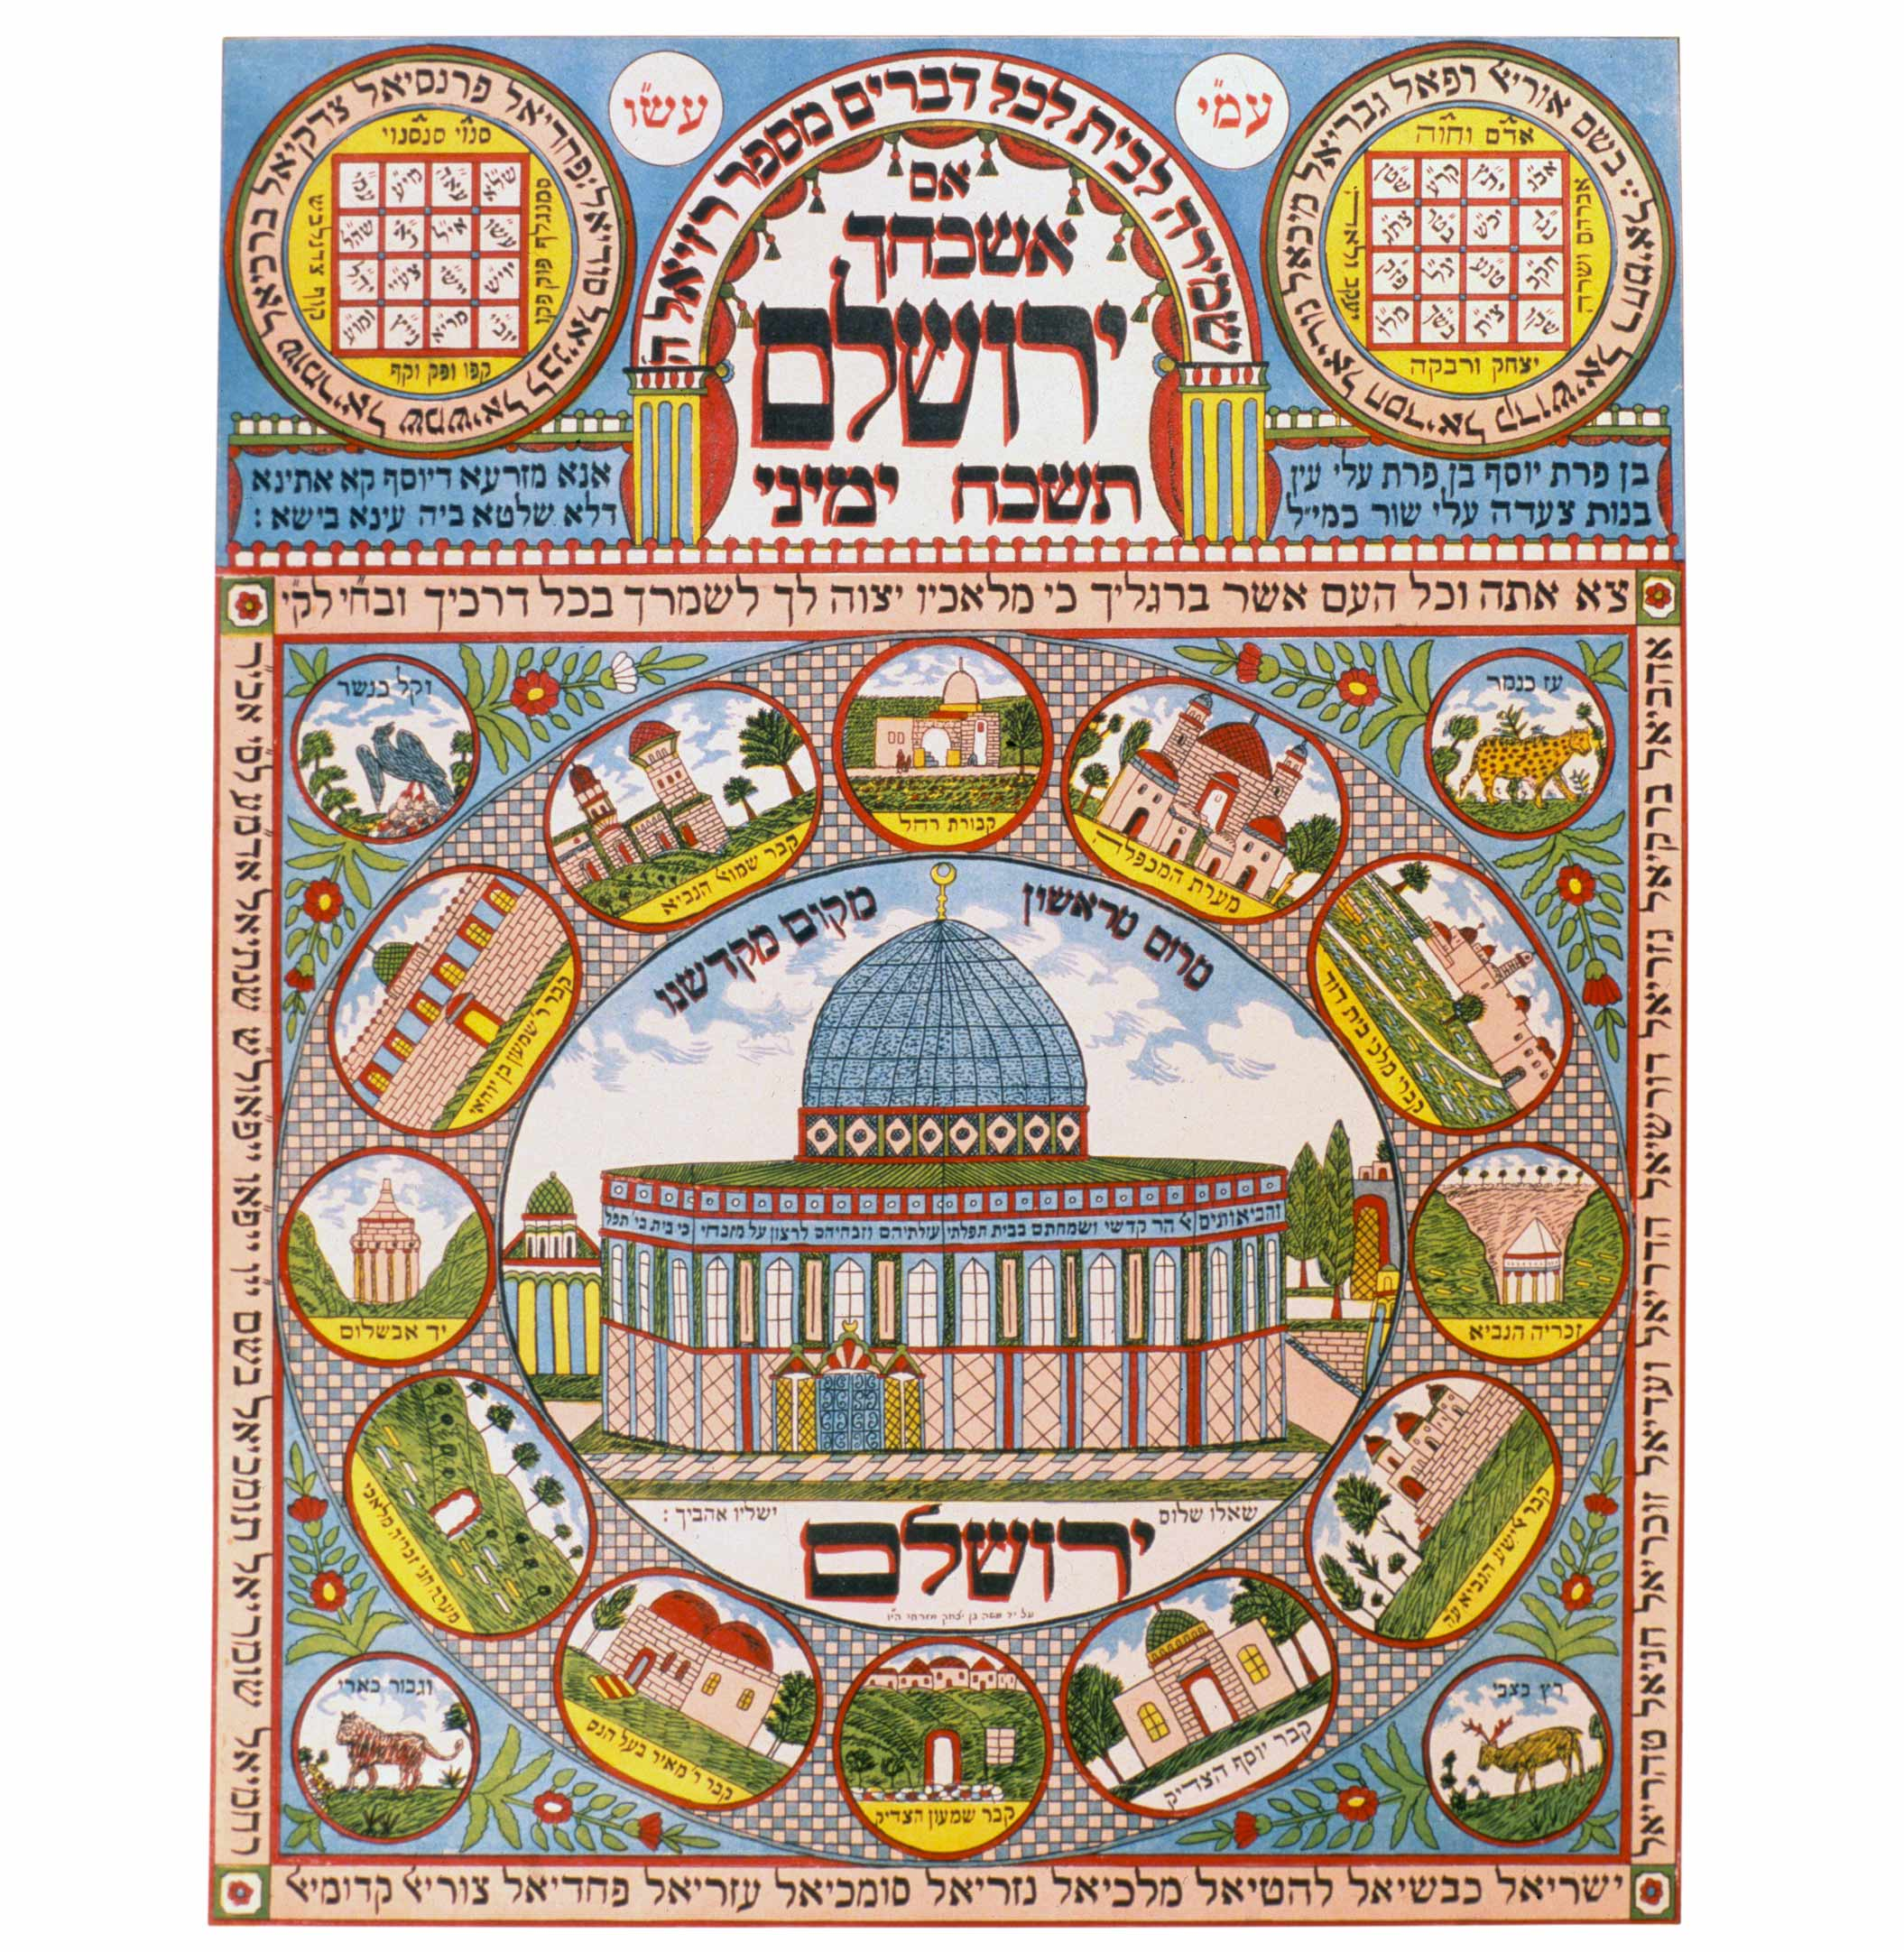 A painted amulet with Hebrew letters. In the center of the amulet is the Dome of the Rock.